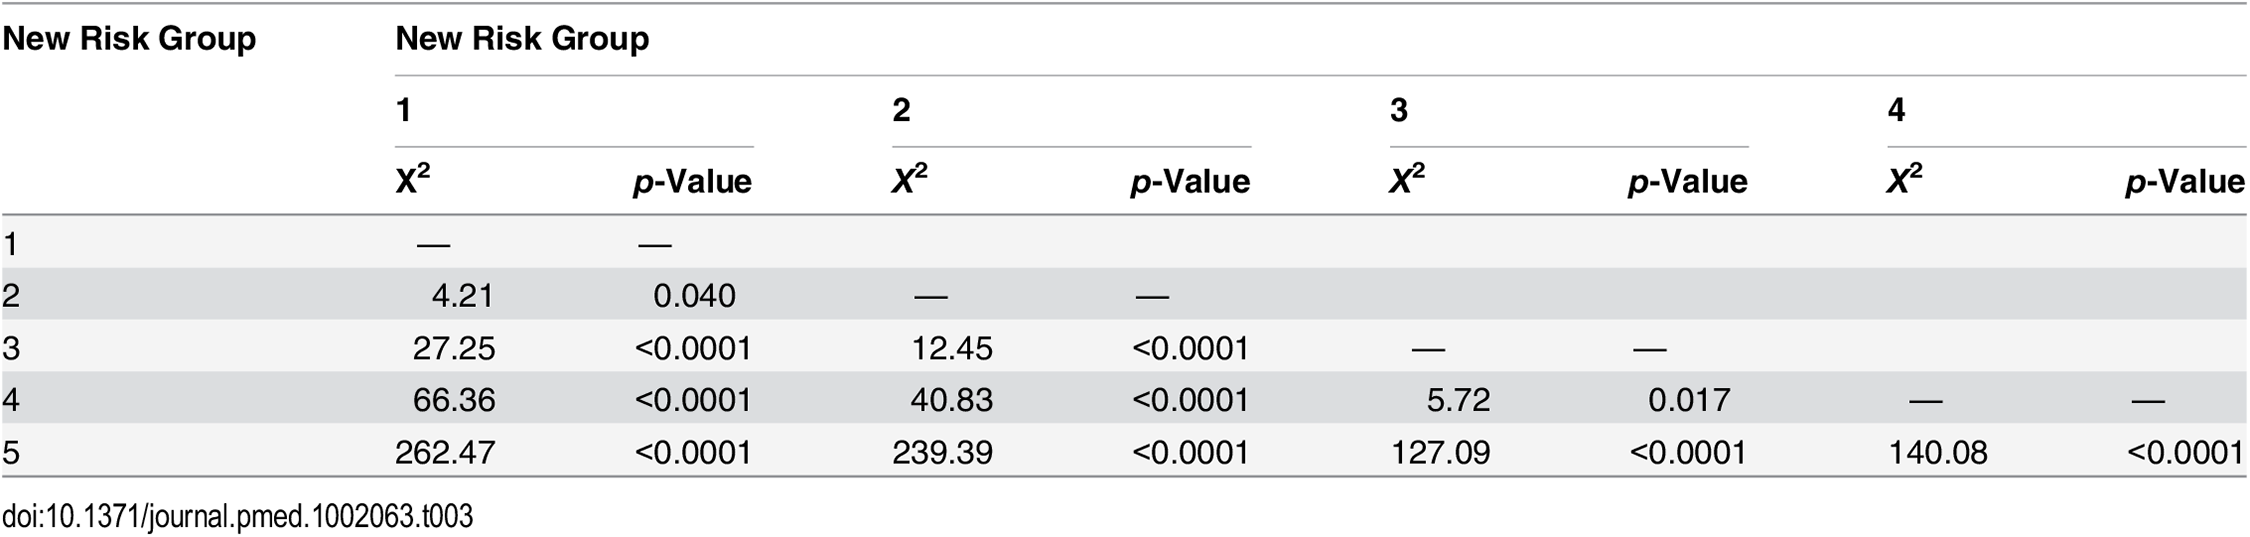 Log-rank pair-wise comparison of new risk groups' association with prostate-cancer-specific mortality in the training set (<i>n</i> = 6,026).